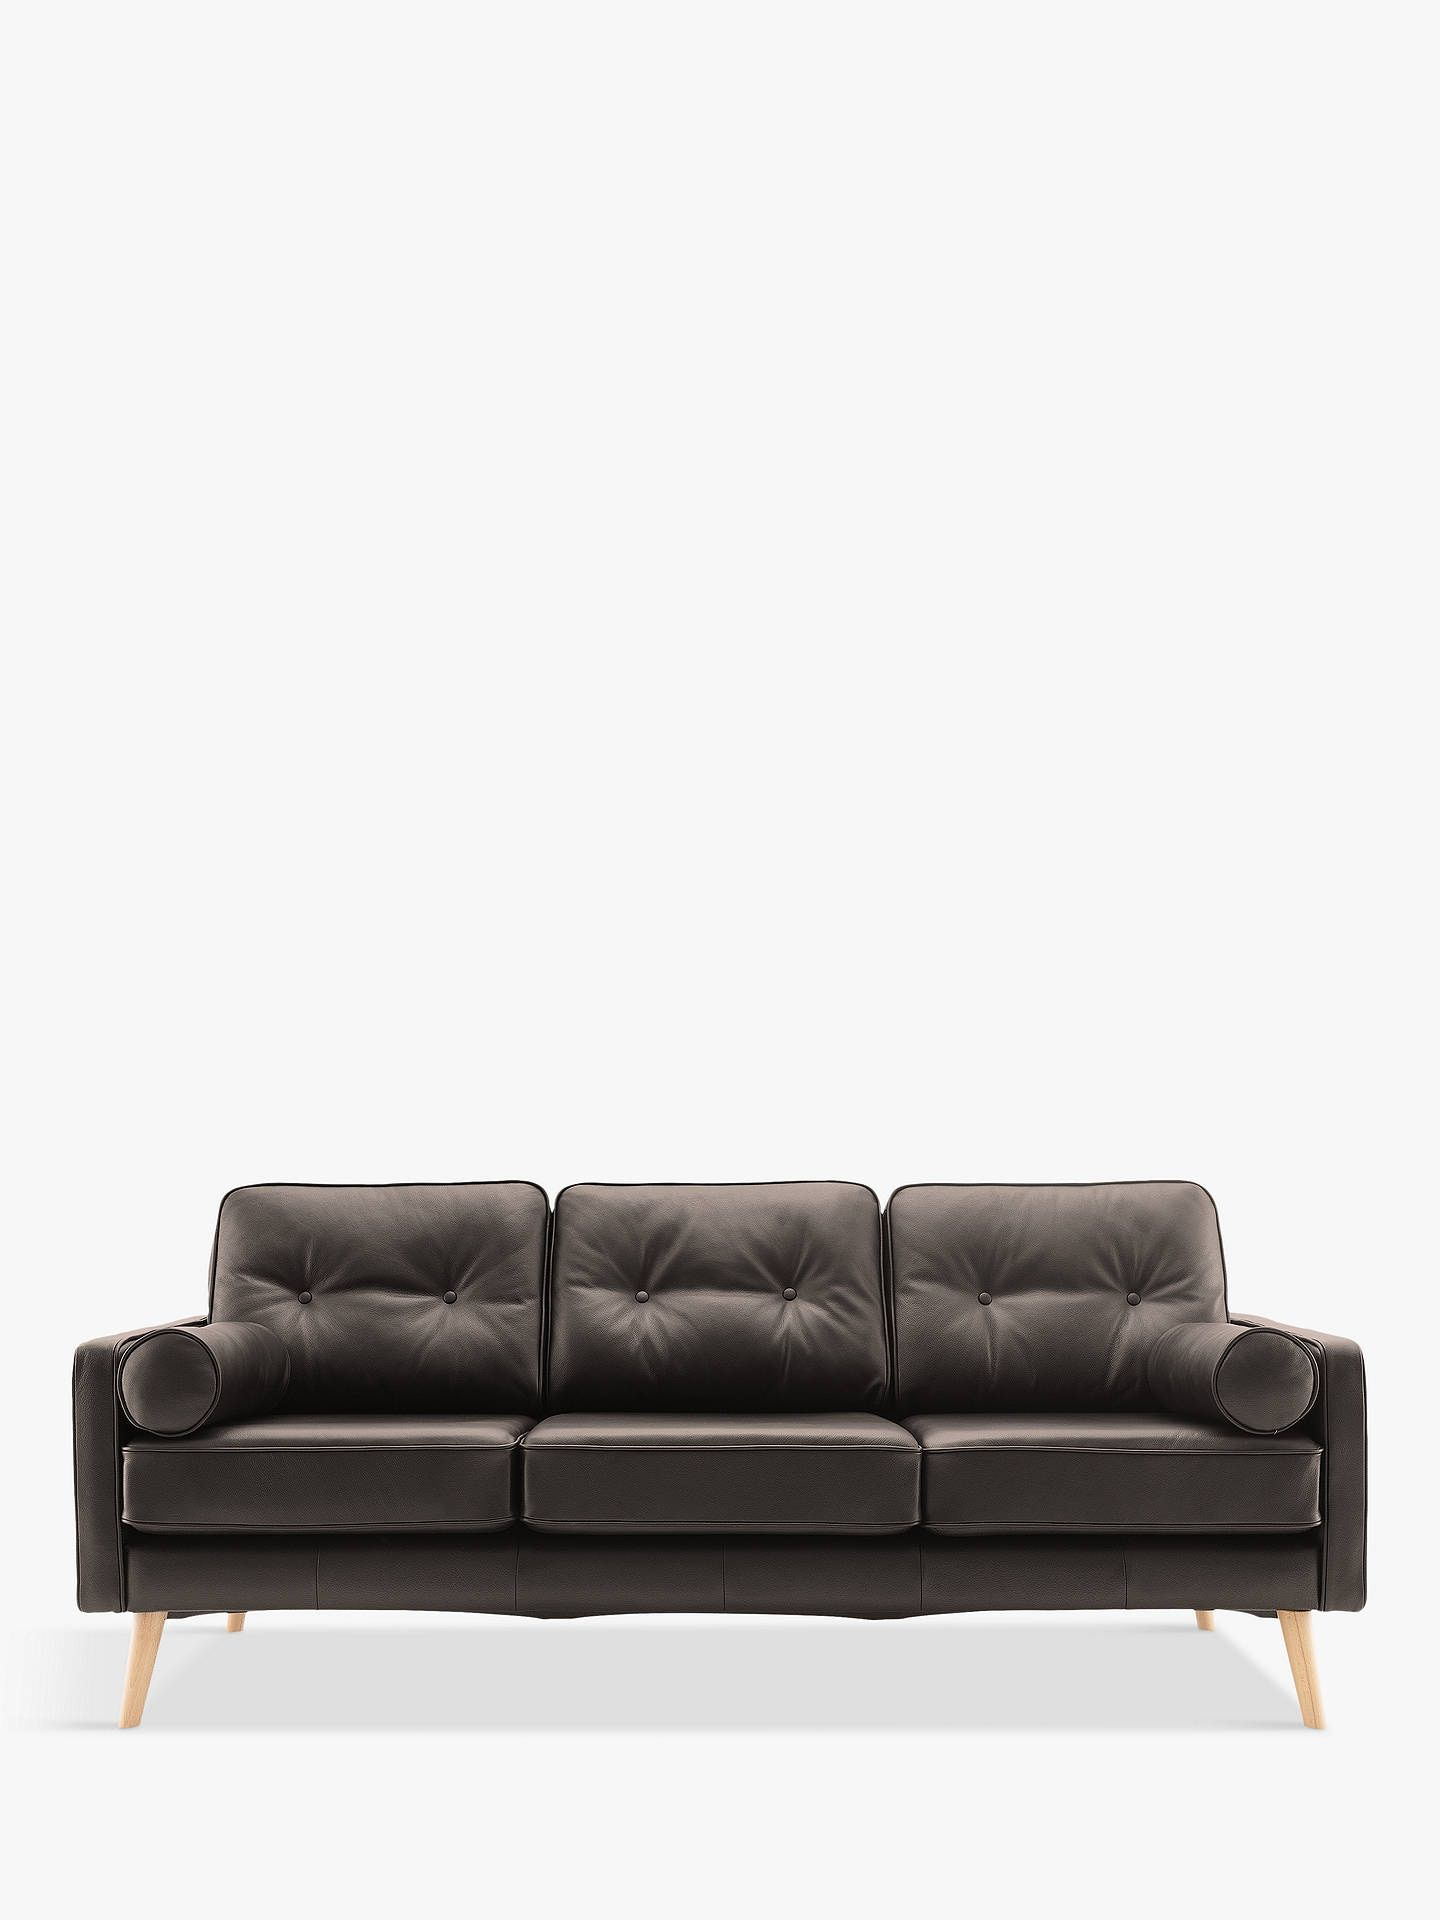 G Plan Vintage The Sixty Five Large 3 Seater Leather Sofa Capri Black 3 Seater Leather Sofa Leather Sofa Sofa